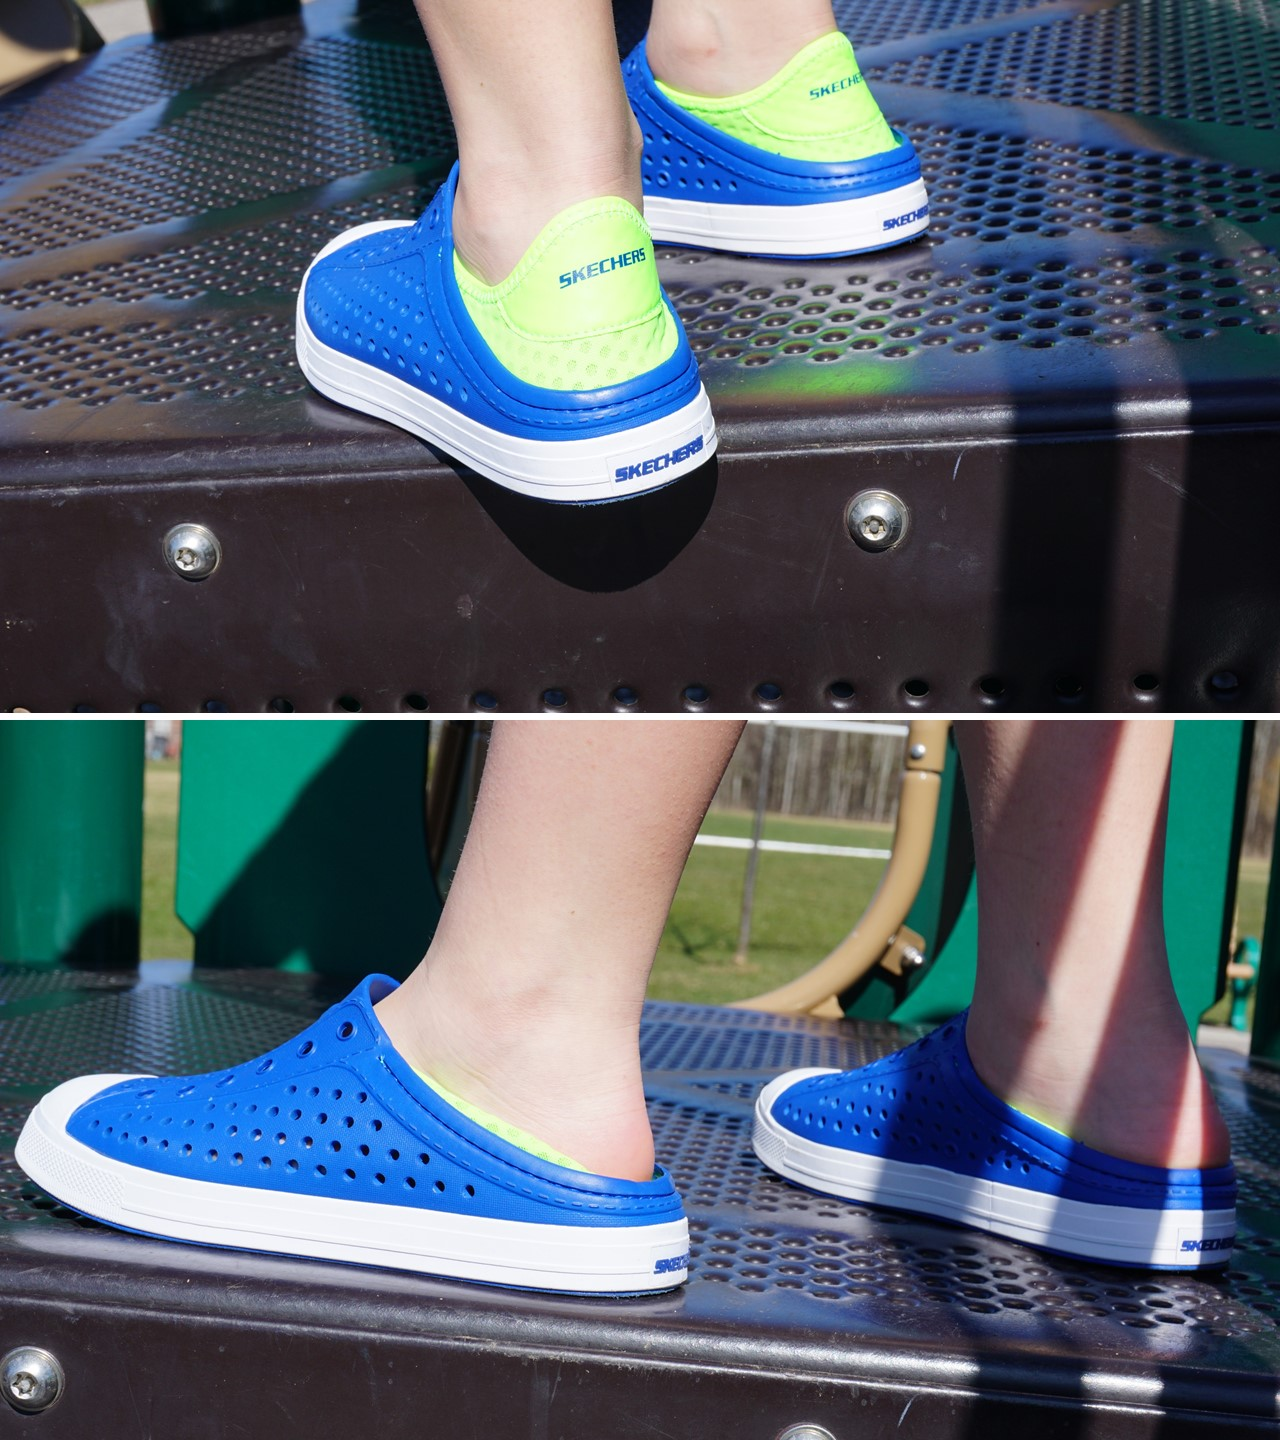 SKECHERS SS18 collection   Mommy